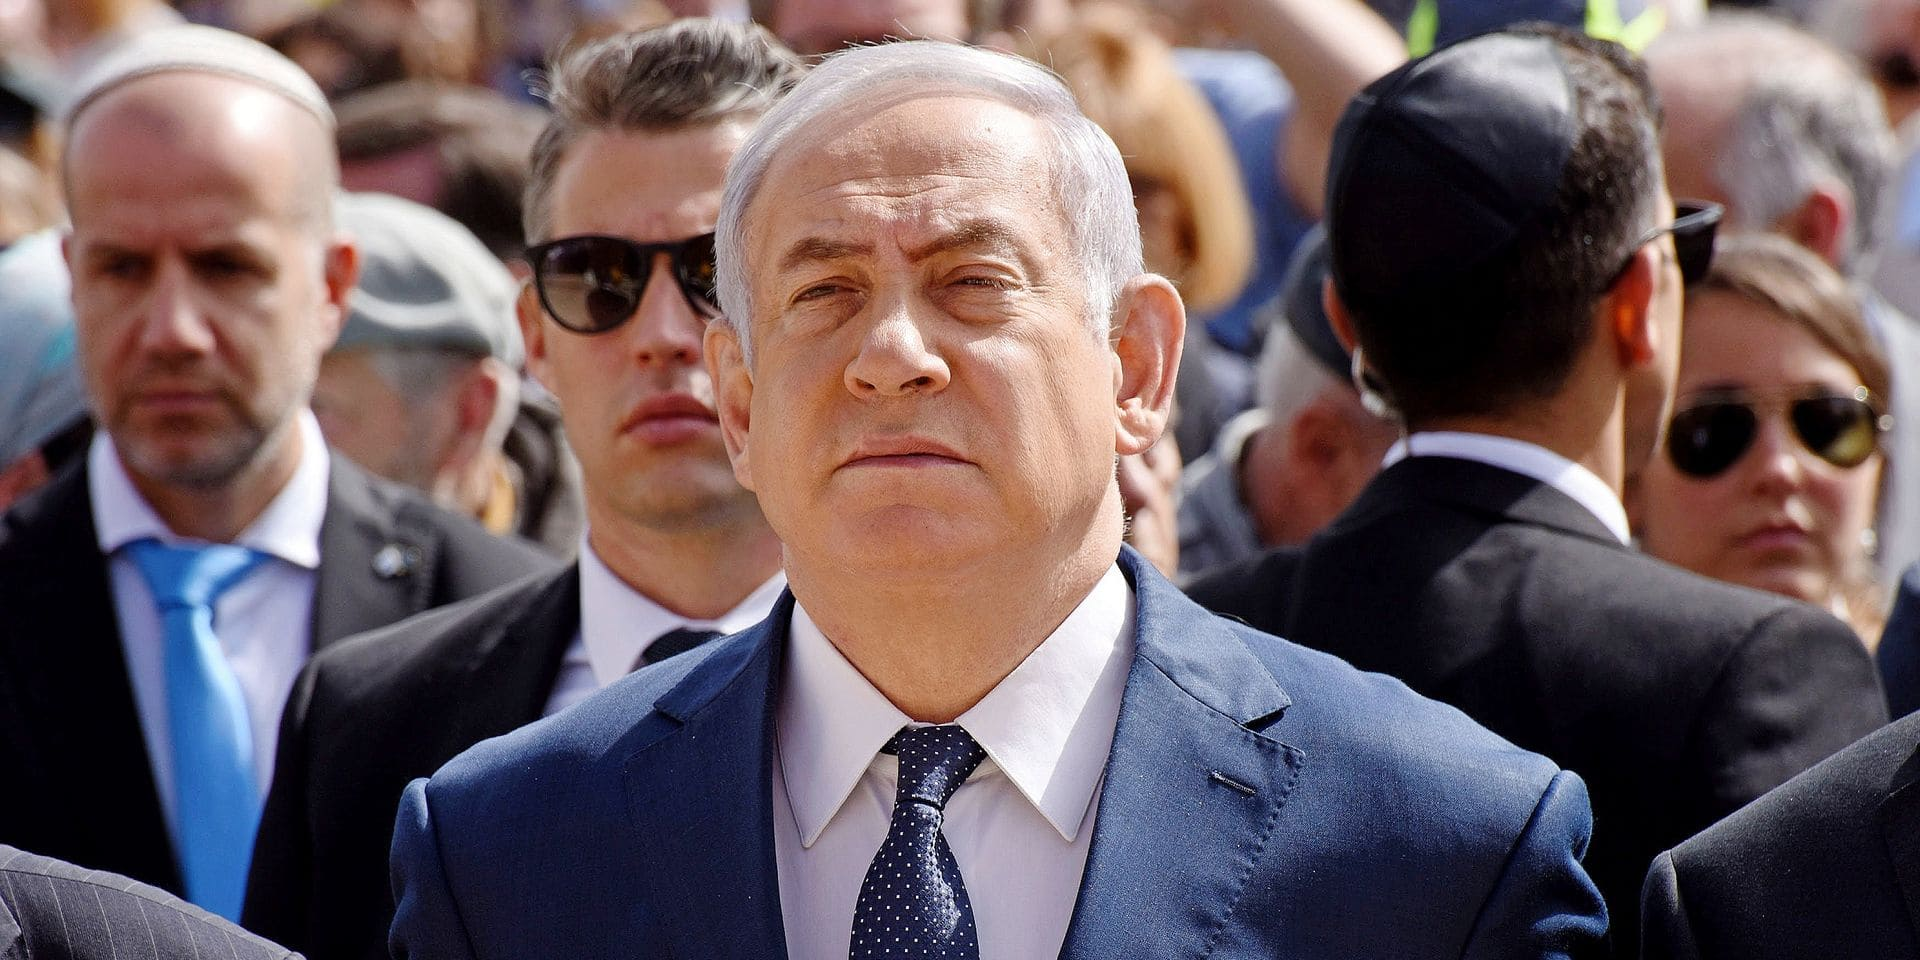 Israeli Prime Minister Benjamin Netanyahu attends a ceremony marking the annual Holocaust Remembrance Day at Yad Vashem Holocaust Memorial in Jerusalem, Israel, April 12, 2018. Israelis stood in silence as sirens sounded for two minutes across the country to remember the six million Jewish victims of Nazi Germany during the Holocaust. Photo by Debbie Hill/UPI PICTURE NOT INCLUDED IN THE CONTRACT ! Only BELGIUM !